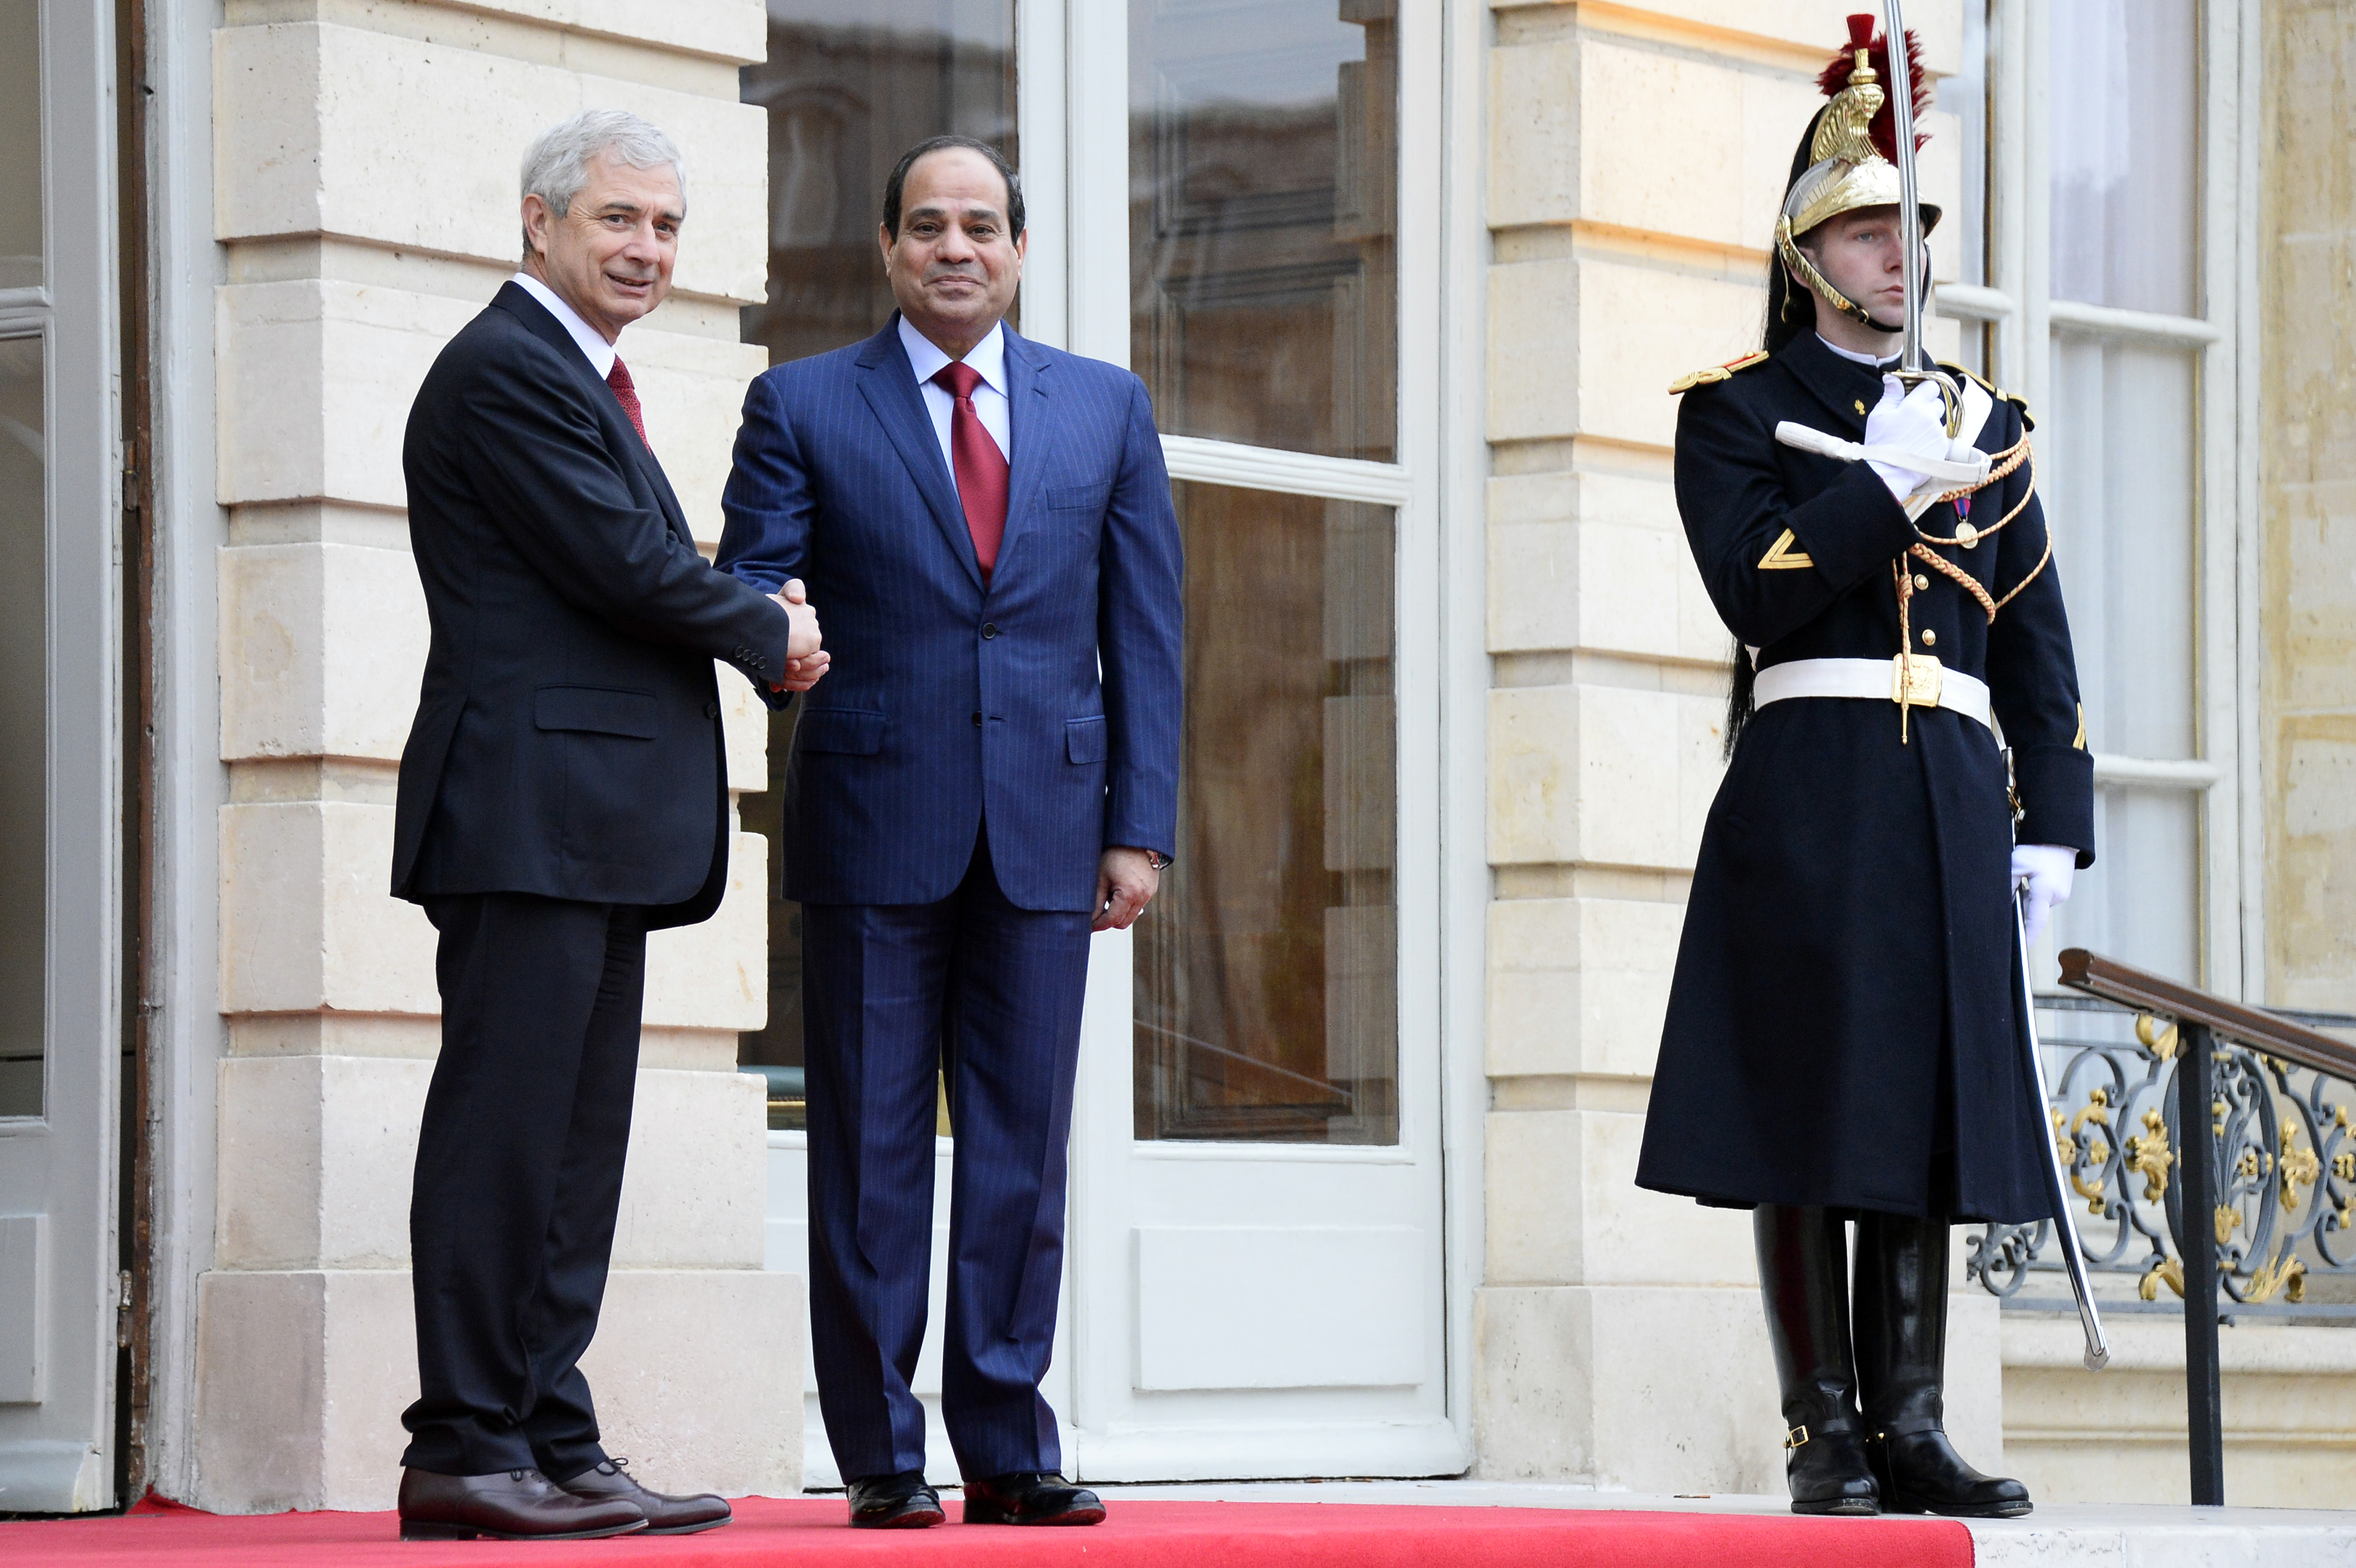 French National Assembly President Claude Bartolone, left, welcomes Egyptian President Abdul Fattah al-Sisi before their talks in Paris on Nov. 27, 2014